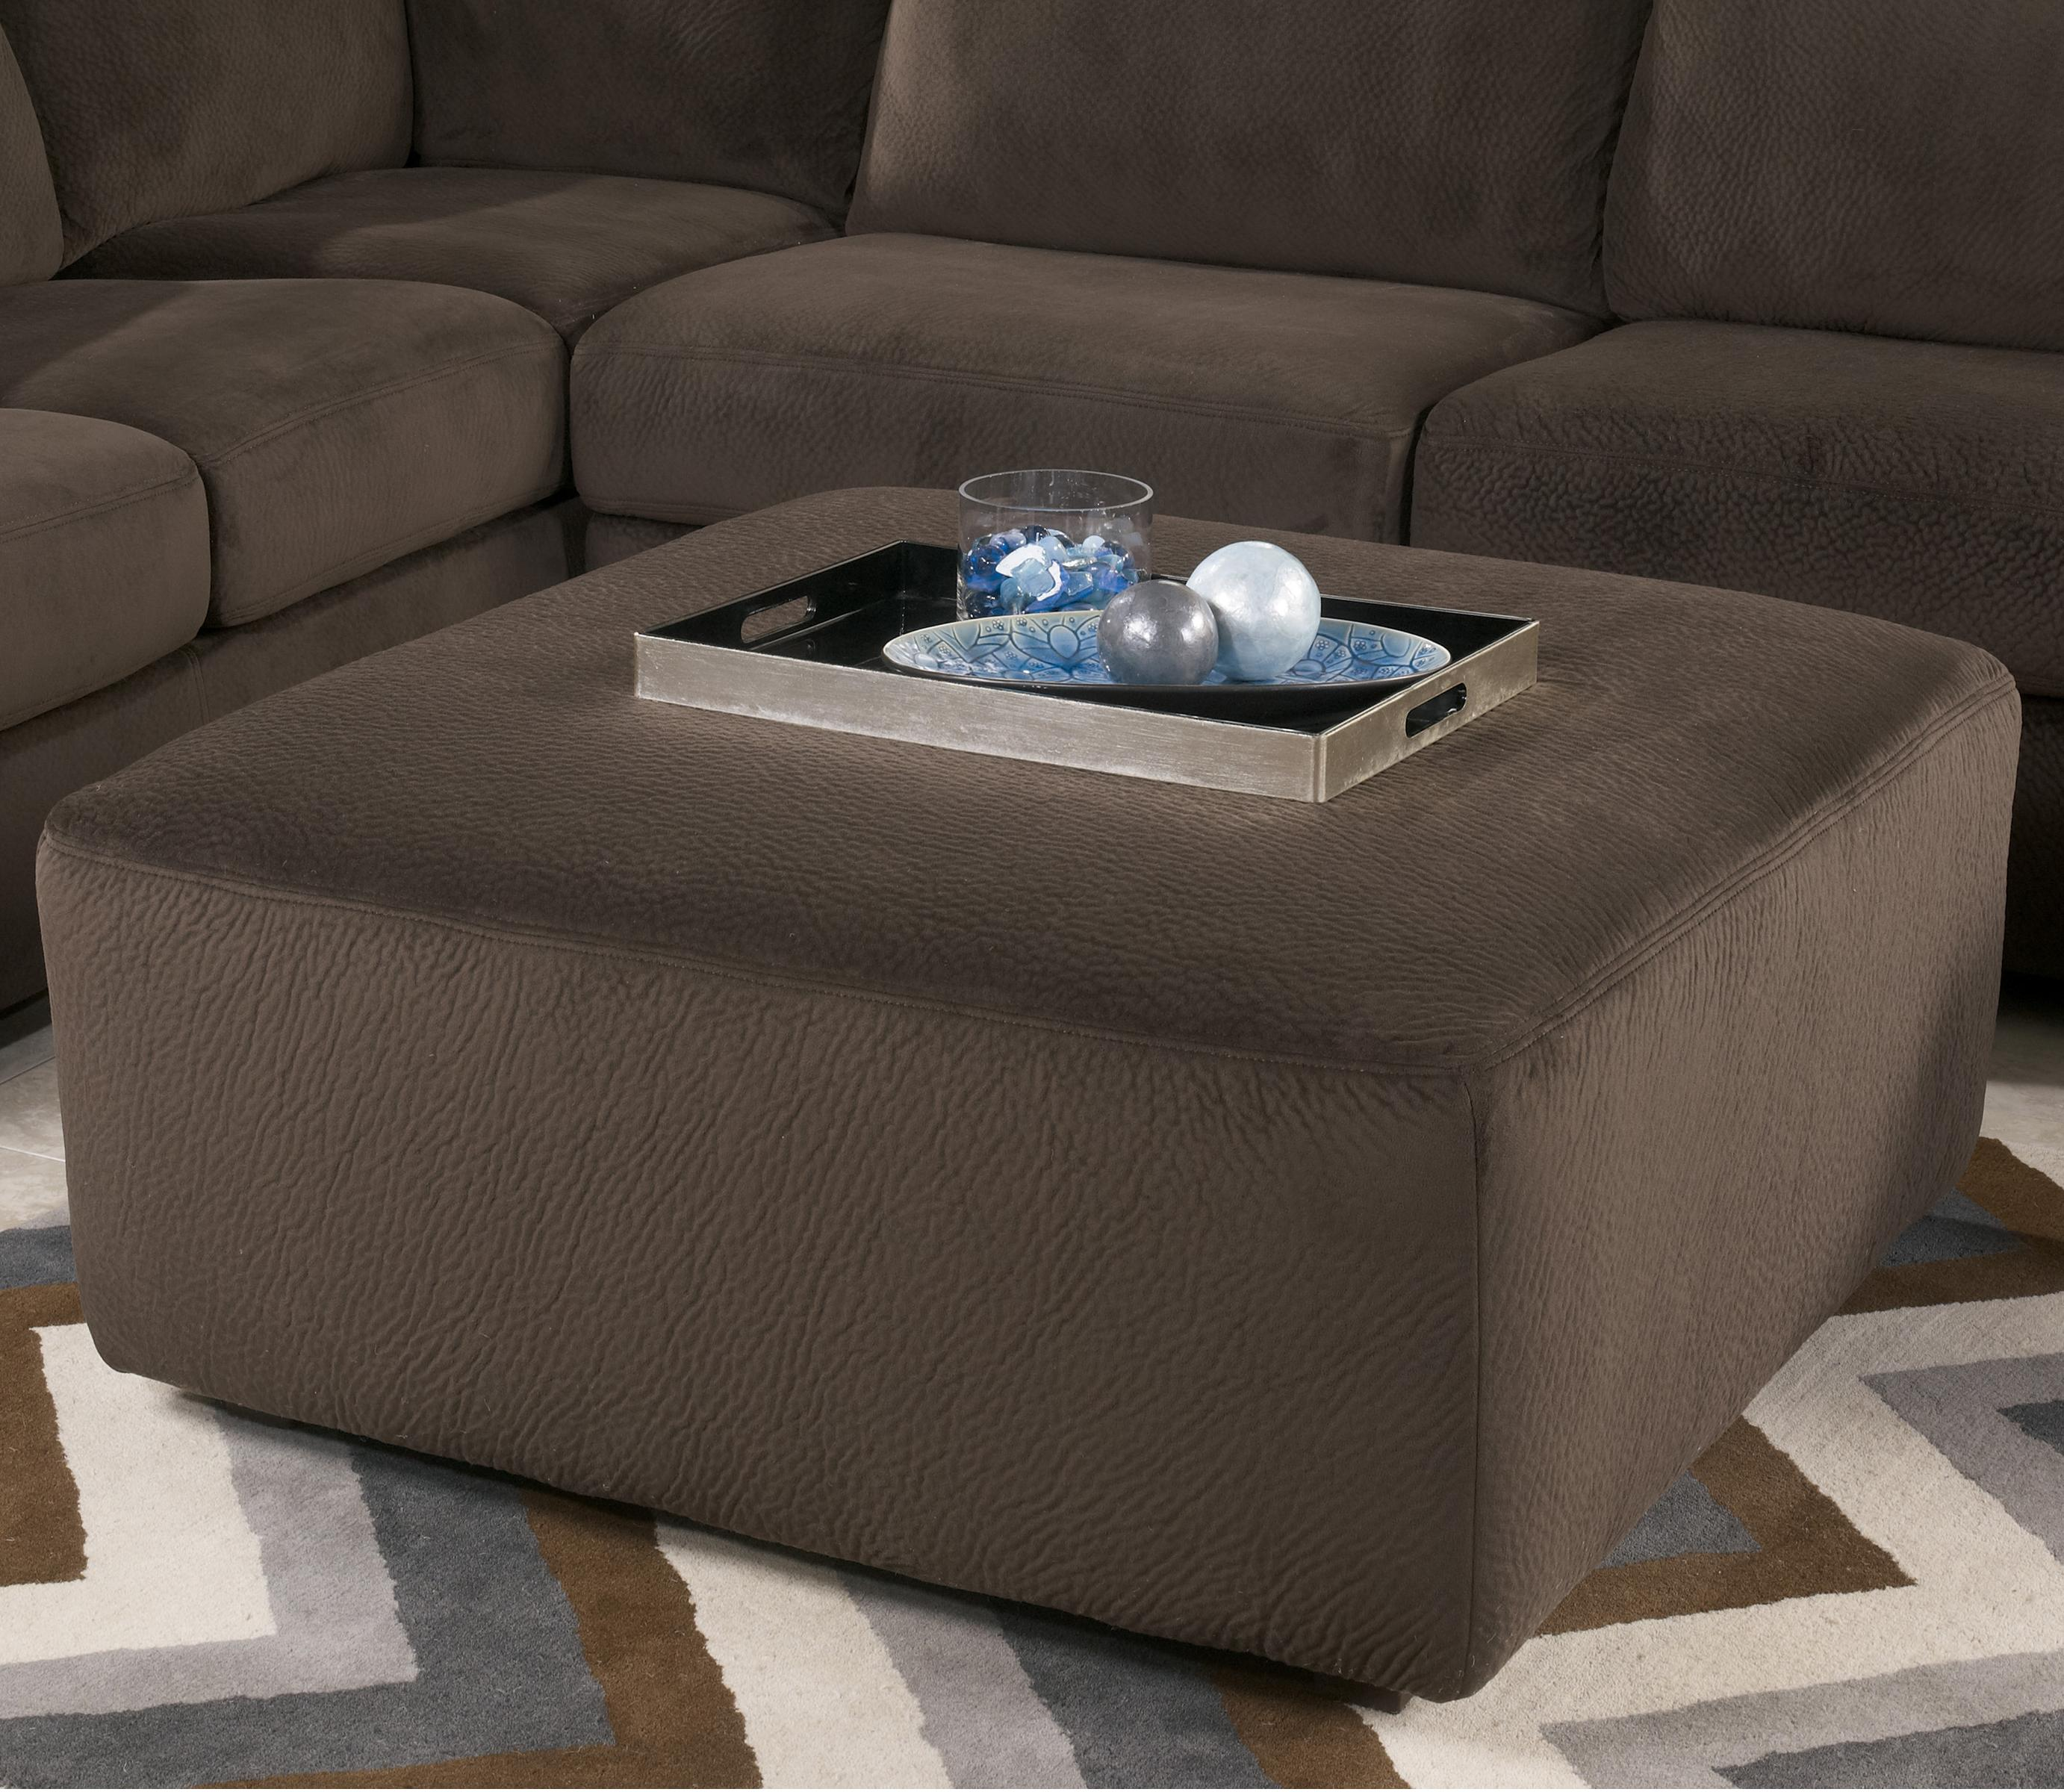 Signature Design by Ashley Jessa Place  - Chocolate Oversized Accent Ottoman - Item Number: 3980408